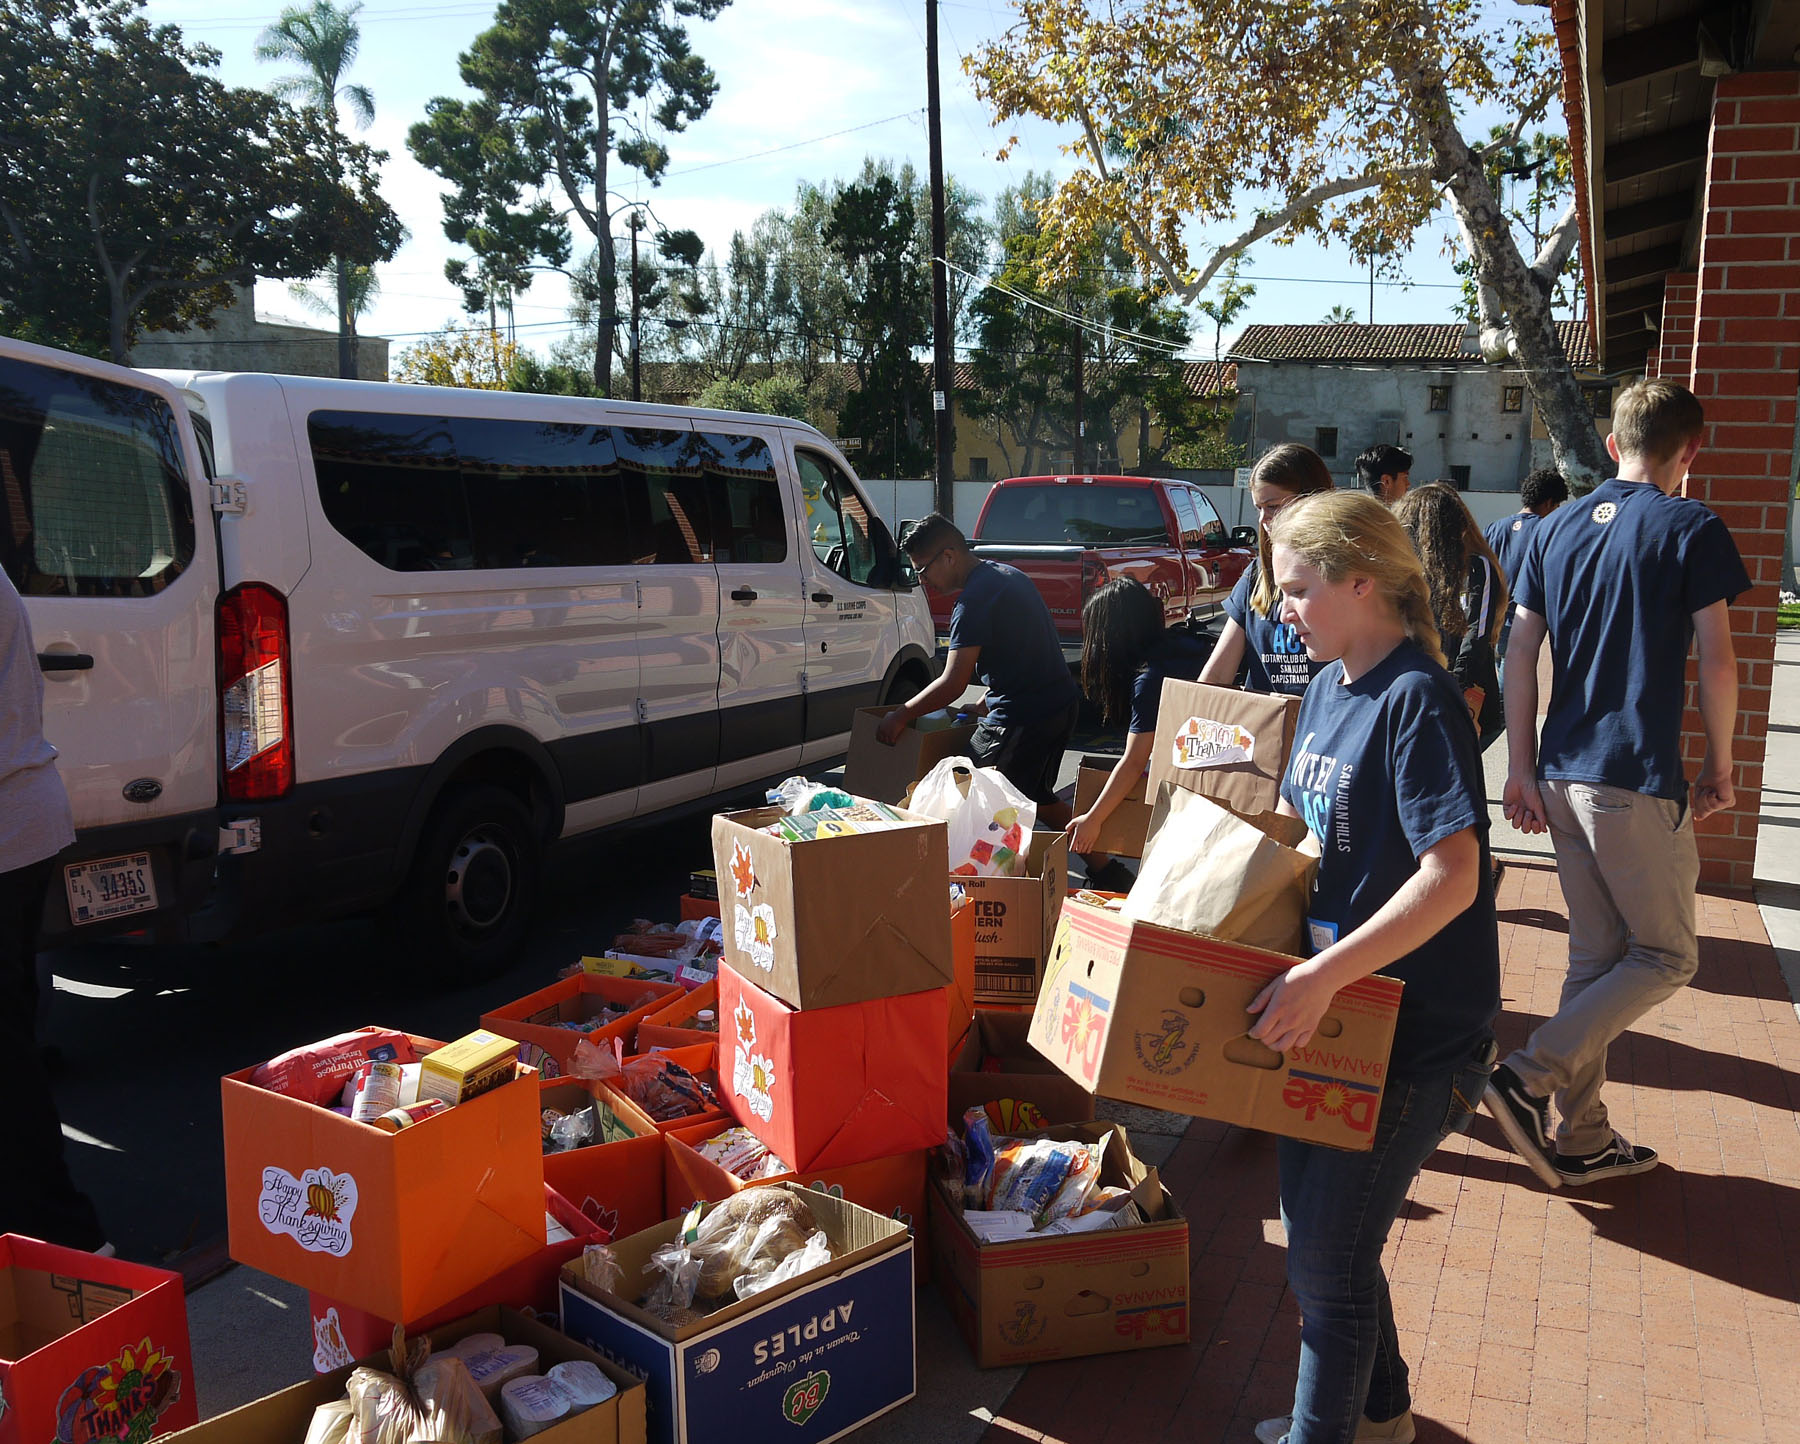 Over 100 Thanksgiving dinners for local and Marine Corps families were distributed. Photo: John Caldwell